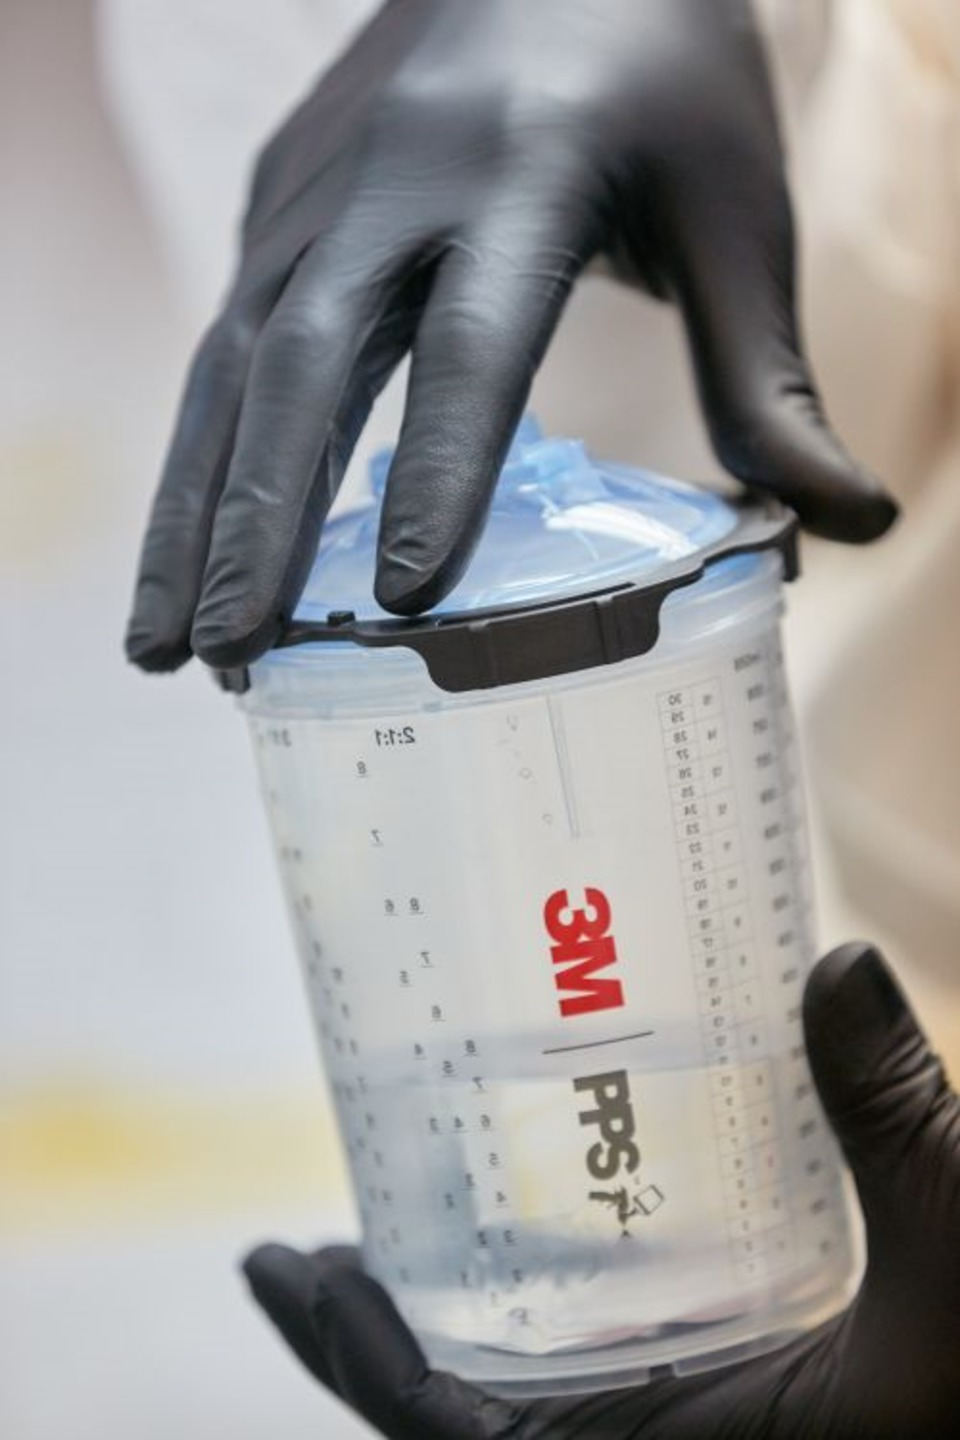 3m Automotive Aftermarket Pps Series 2 0 Spray Cup System